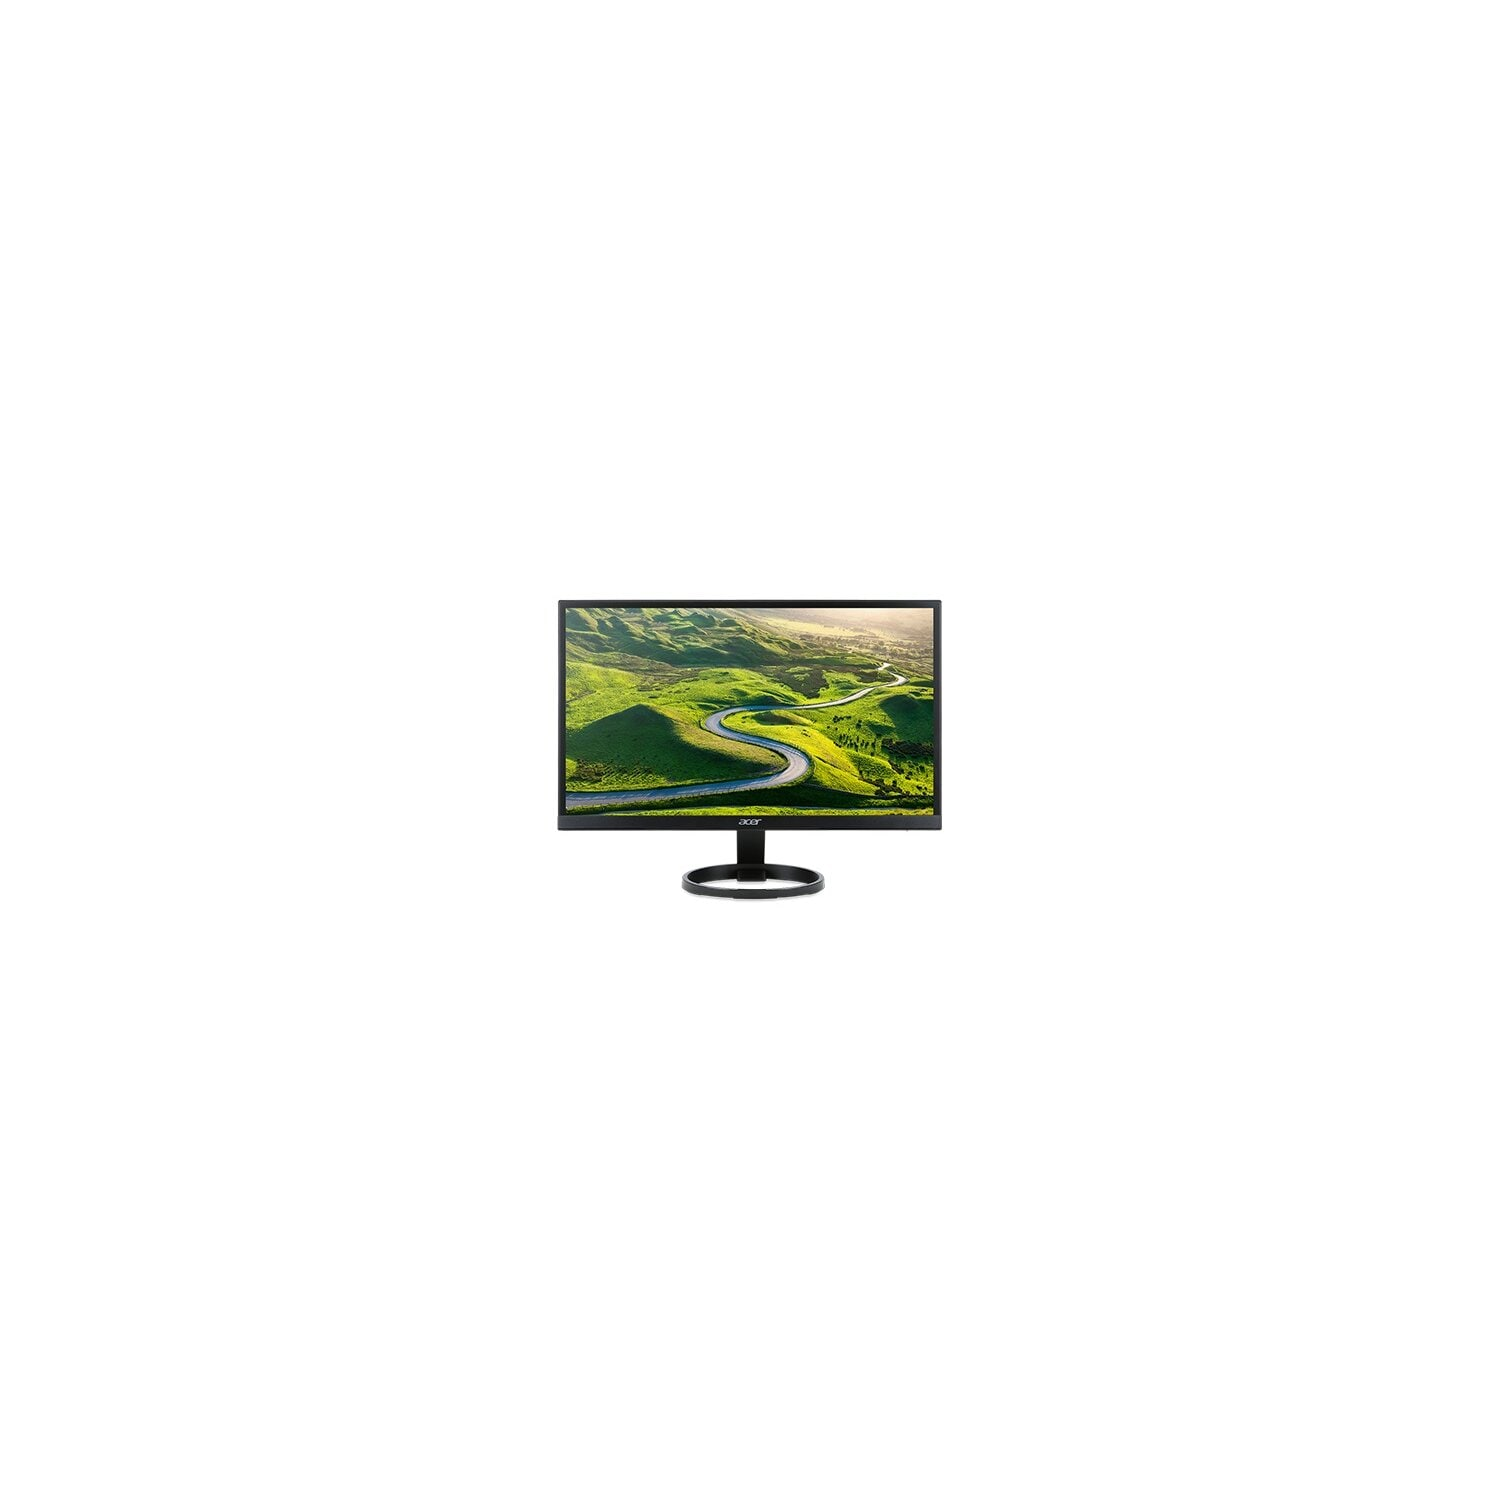 Monitor ACER R221QB 21.5 FHD IPS 1ms